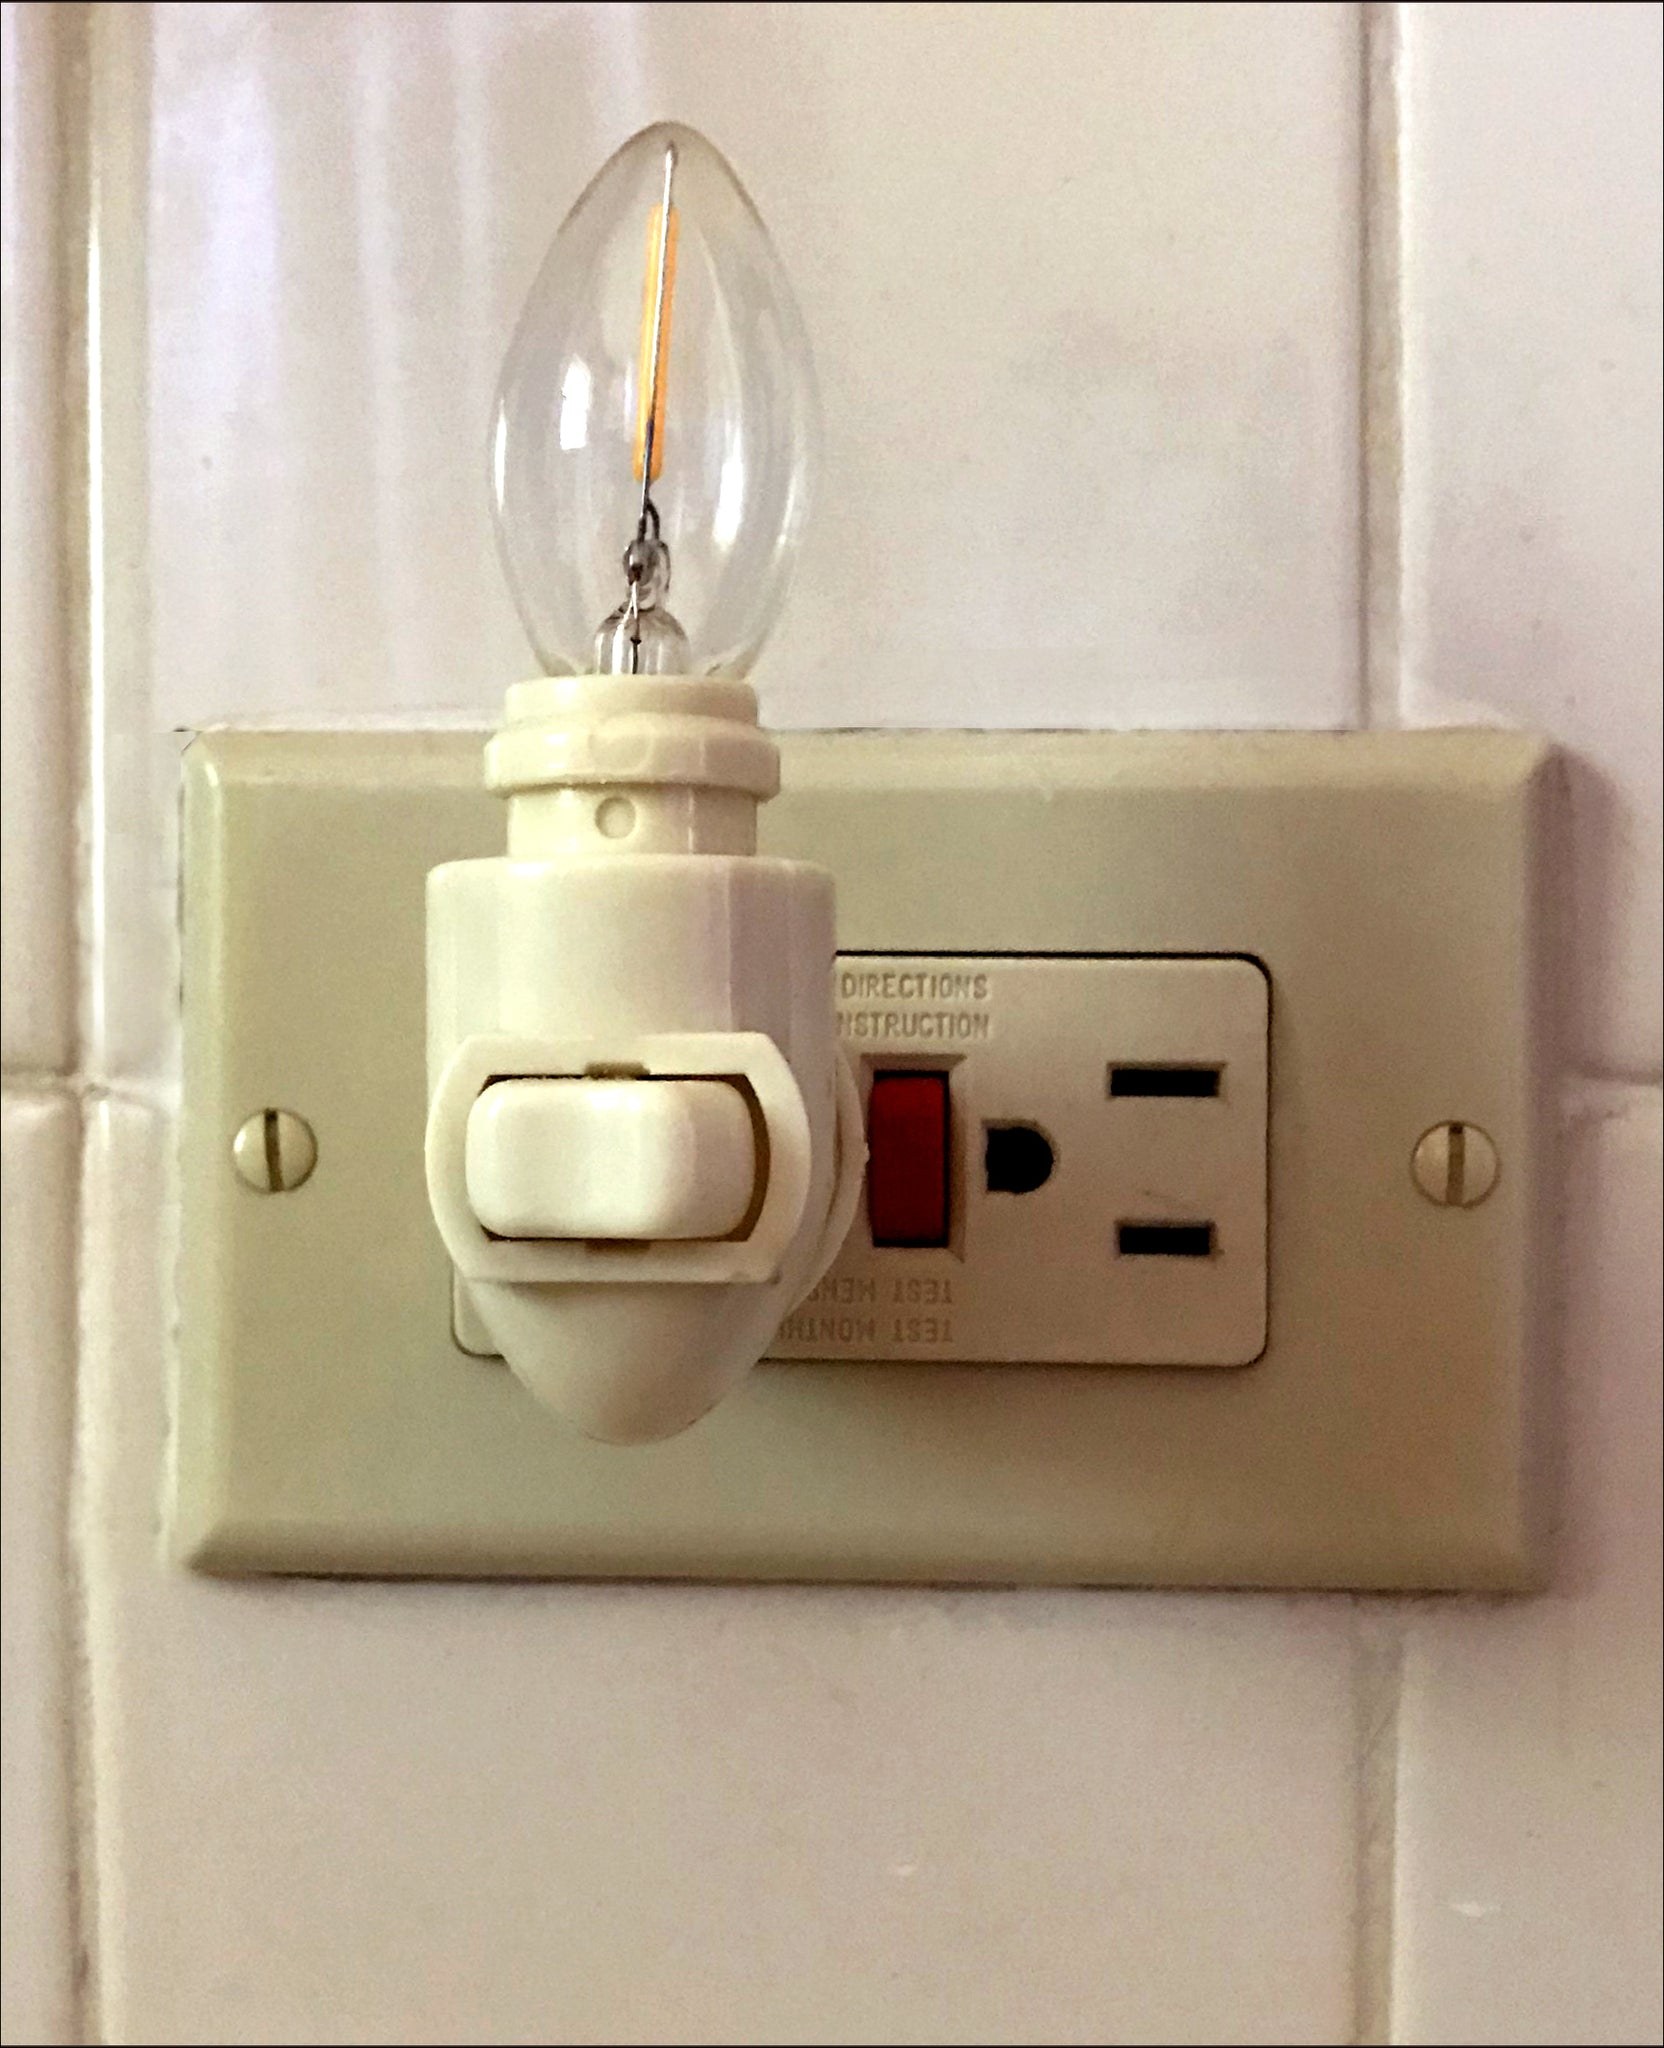 Nightlight part: Rotating fixture and bulb